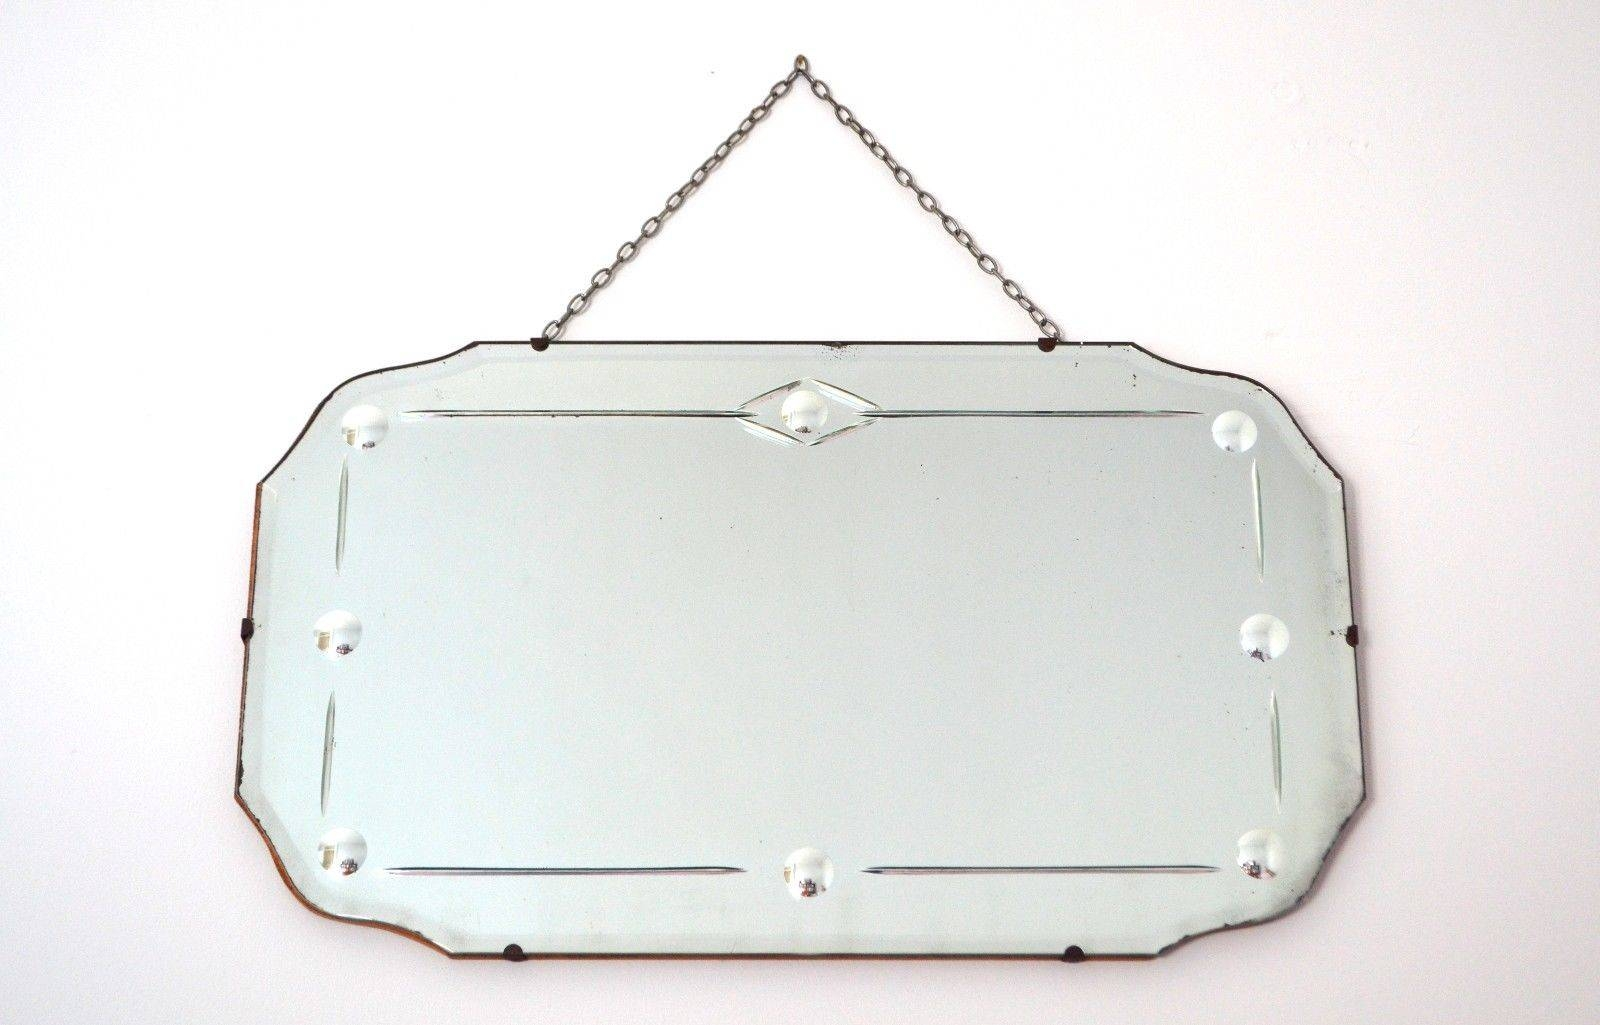 Original Vintage Art Deco 1930S Bevelled Hanging Wall Mirror With with regard to Original Art Deco Mirrors (Image 20 of 25)